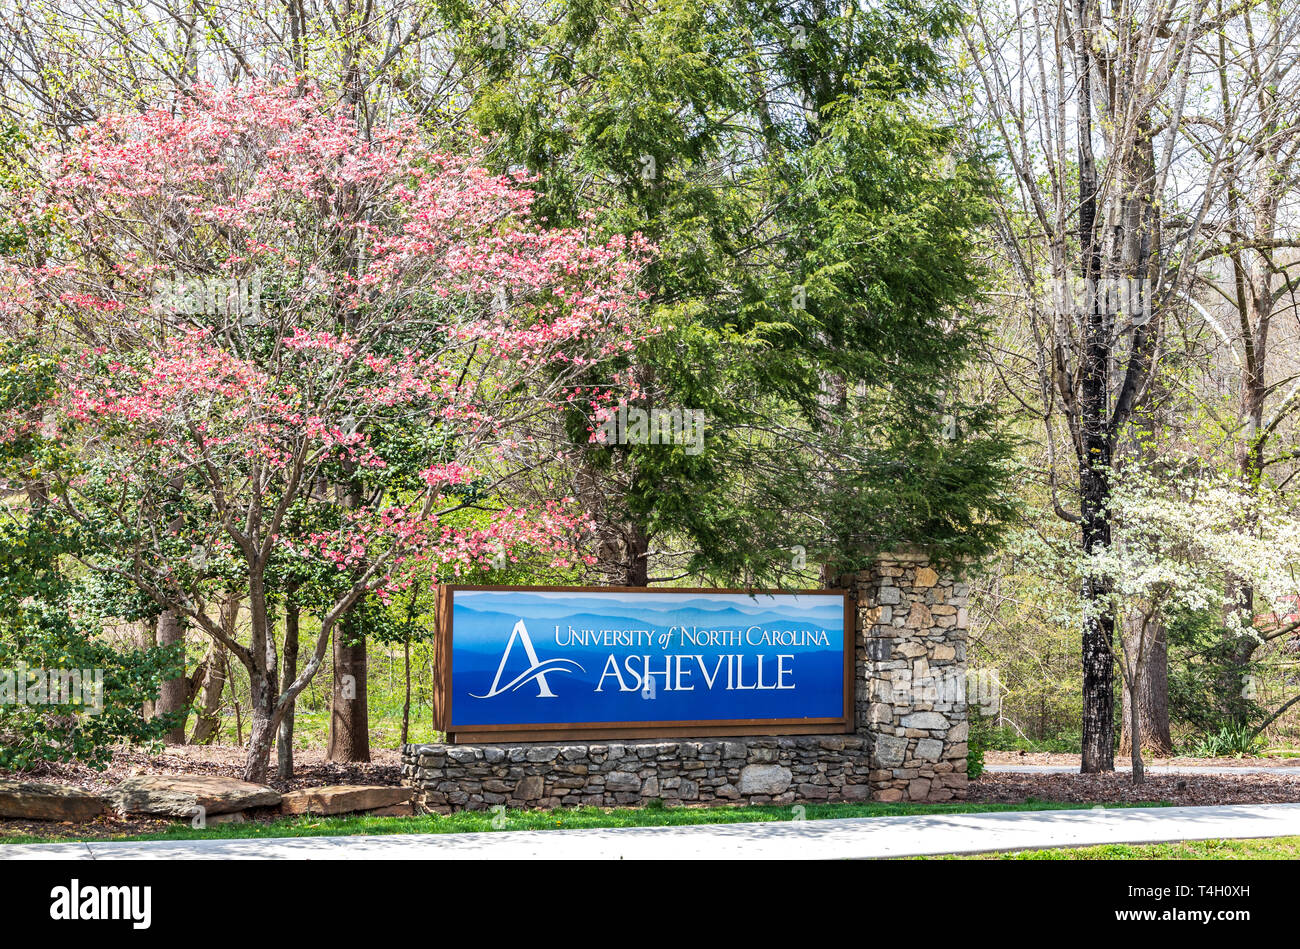 ASHEVILLE, NC, USA-4/11/19:  Entrance sign at campus of the University of North Carolina at Asheville, in early spring. - Stock Image